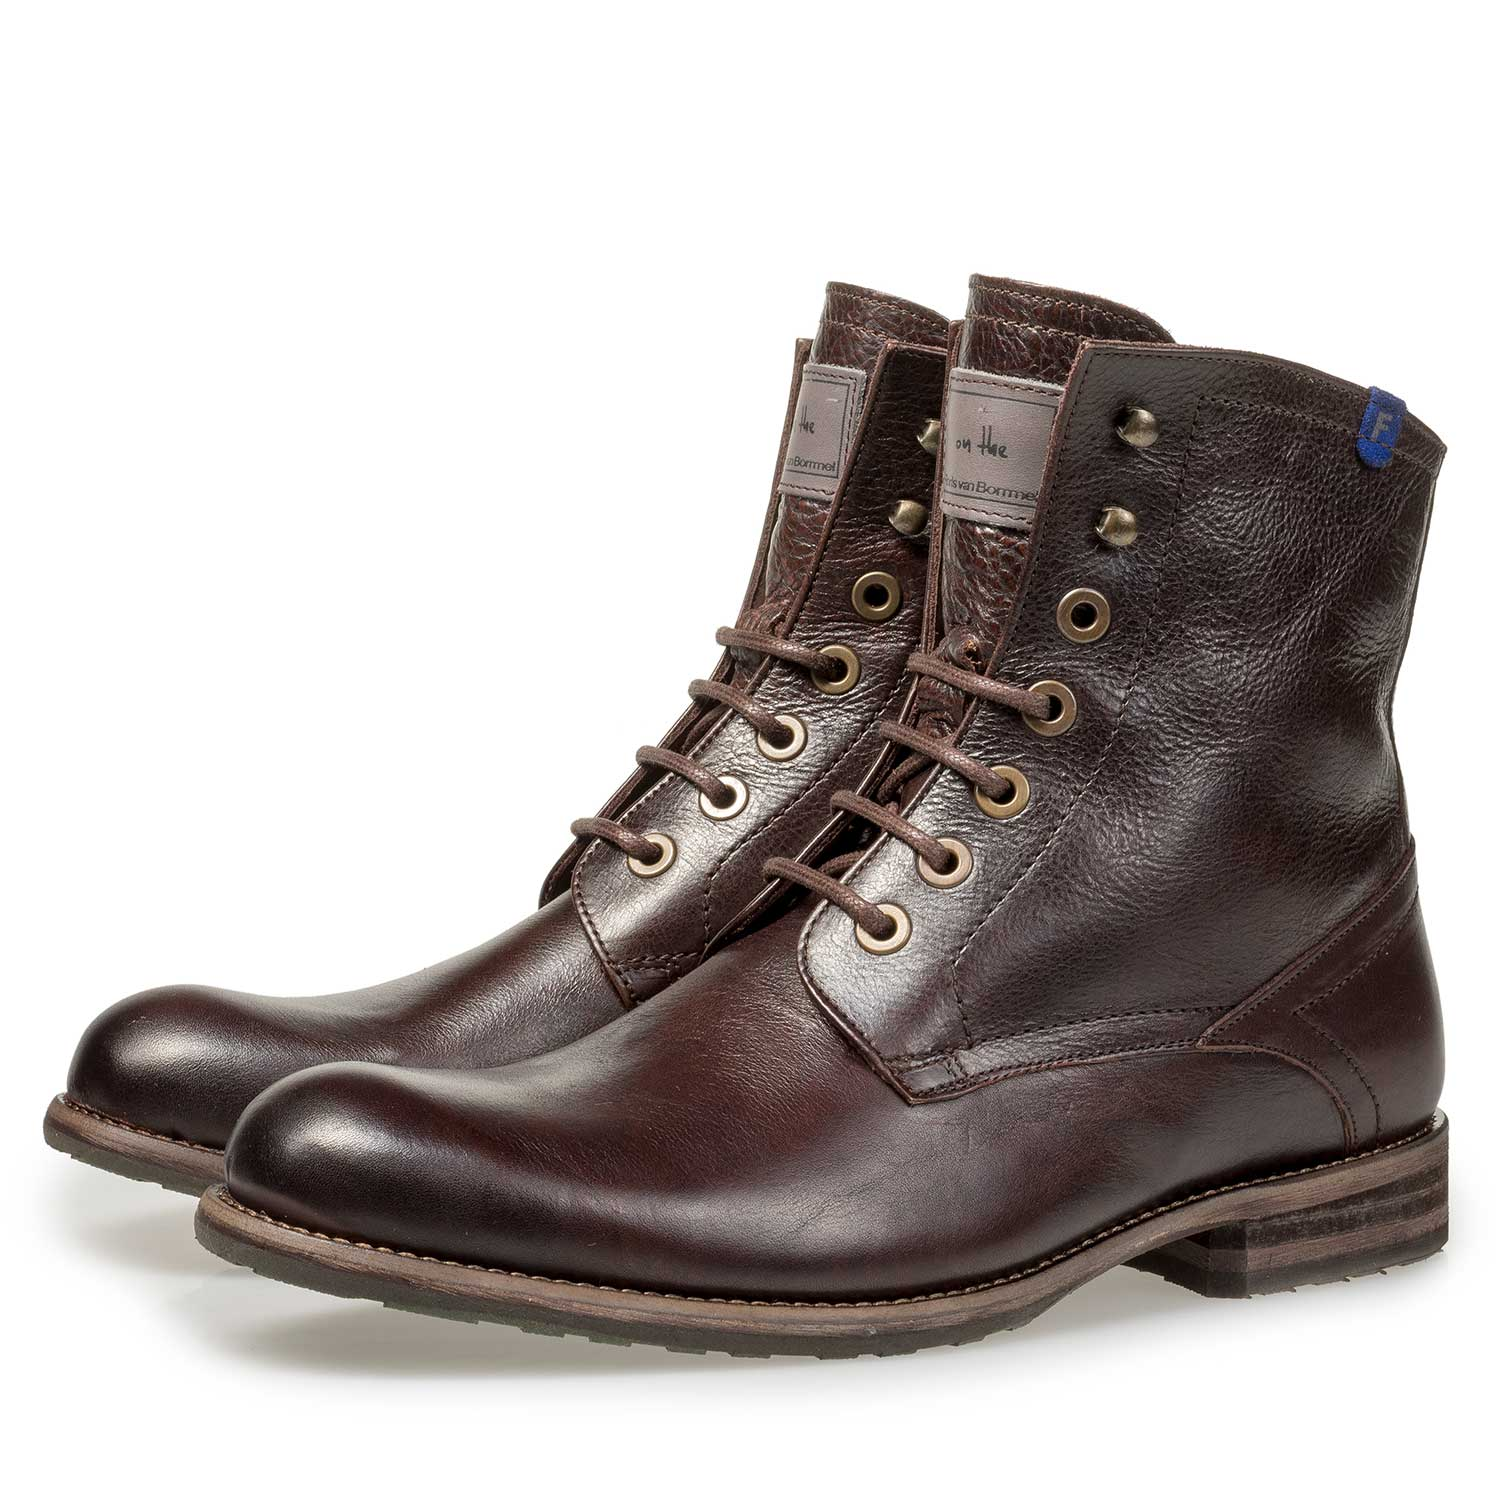 10751/15 - Brown lined calf leather lace boot